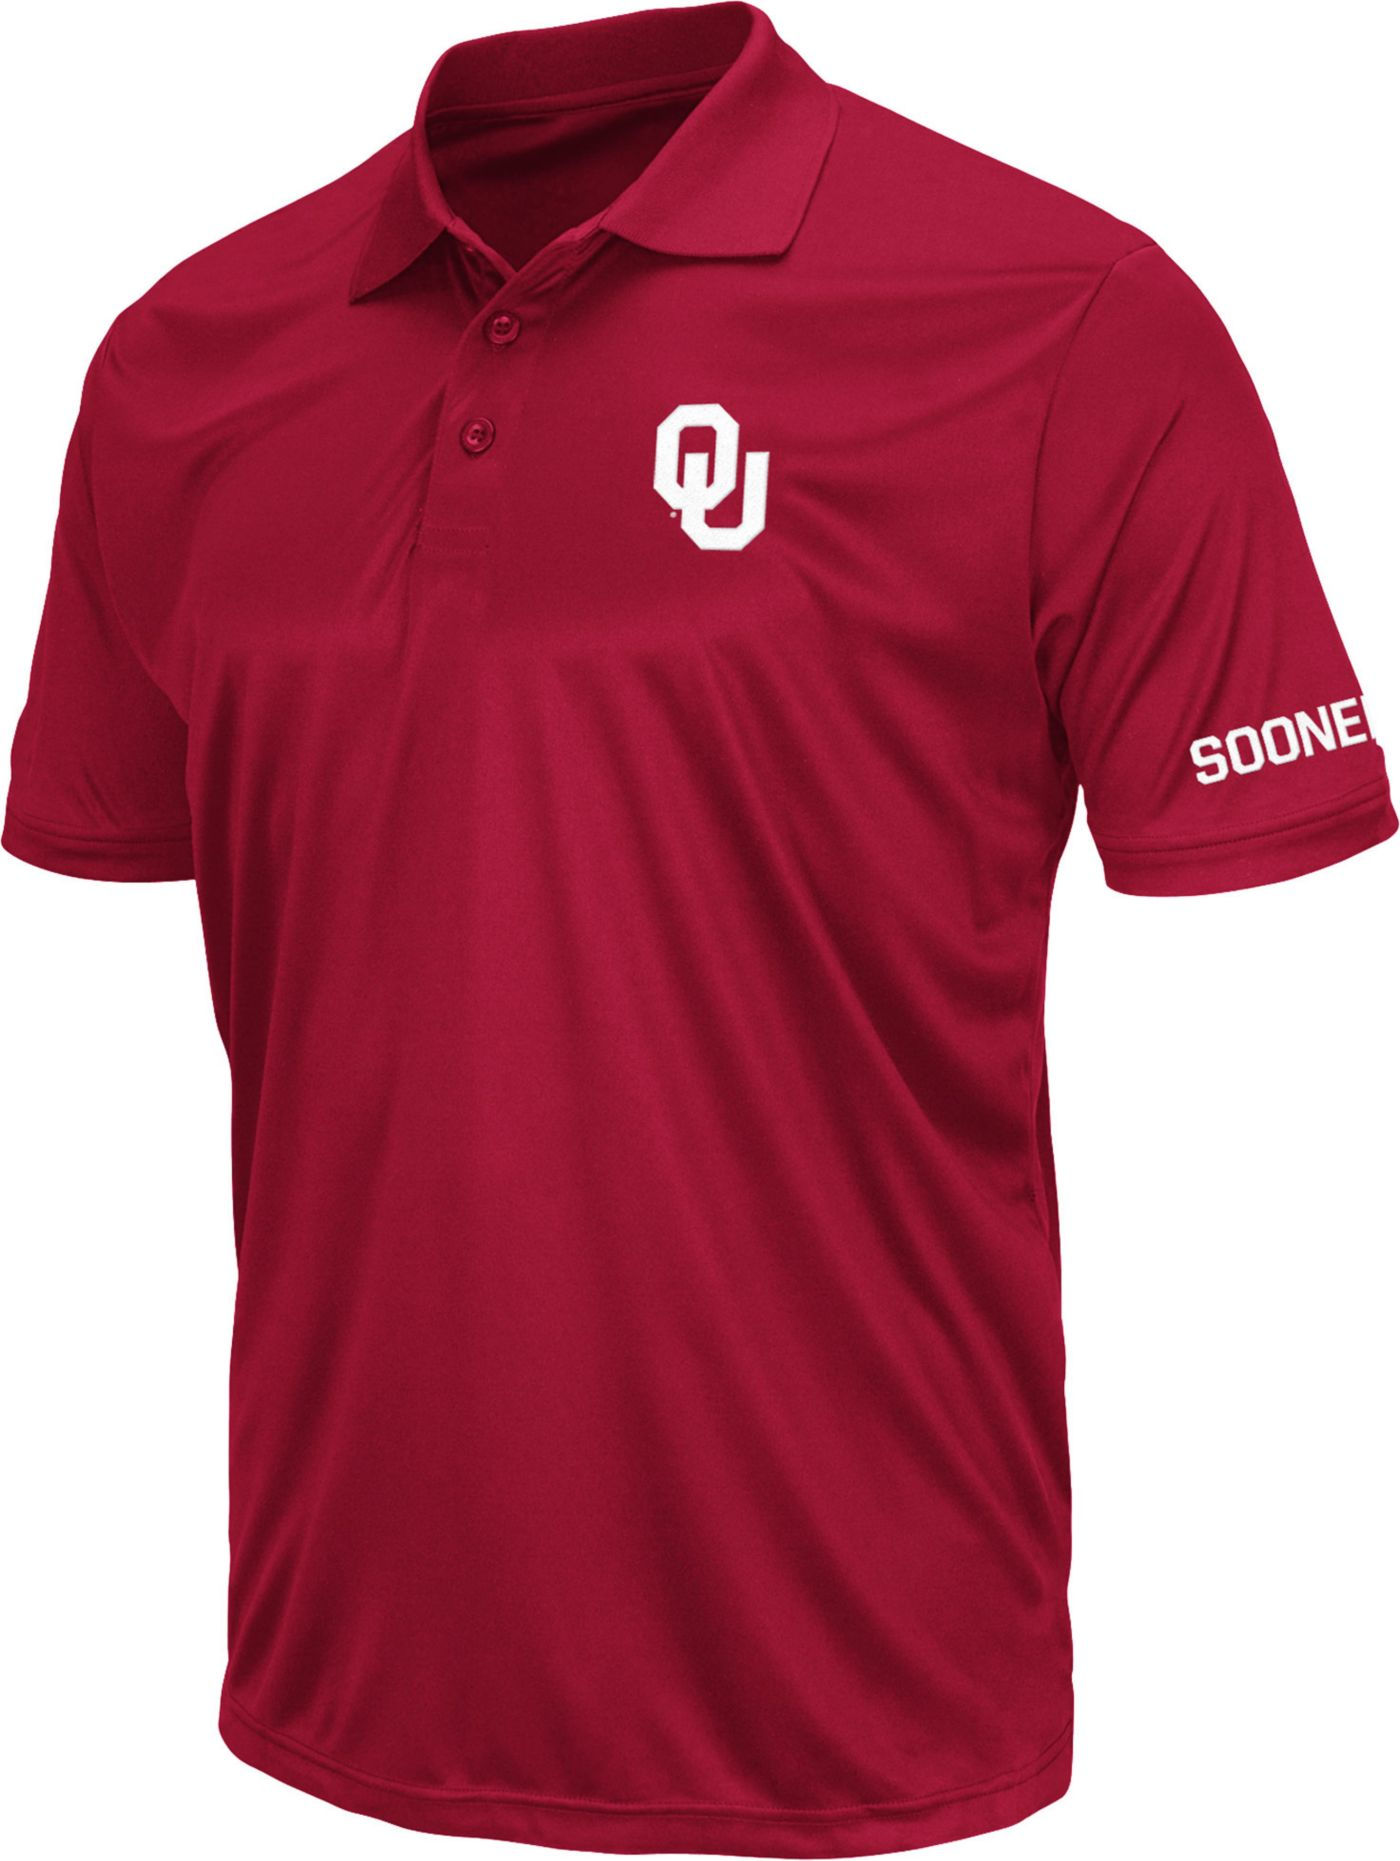 Colosseum Men's Oklahoma Sooners Crimson Stance Polo